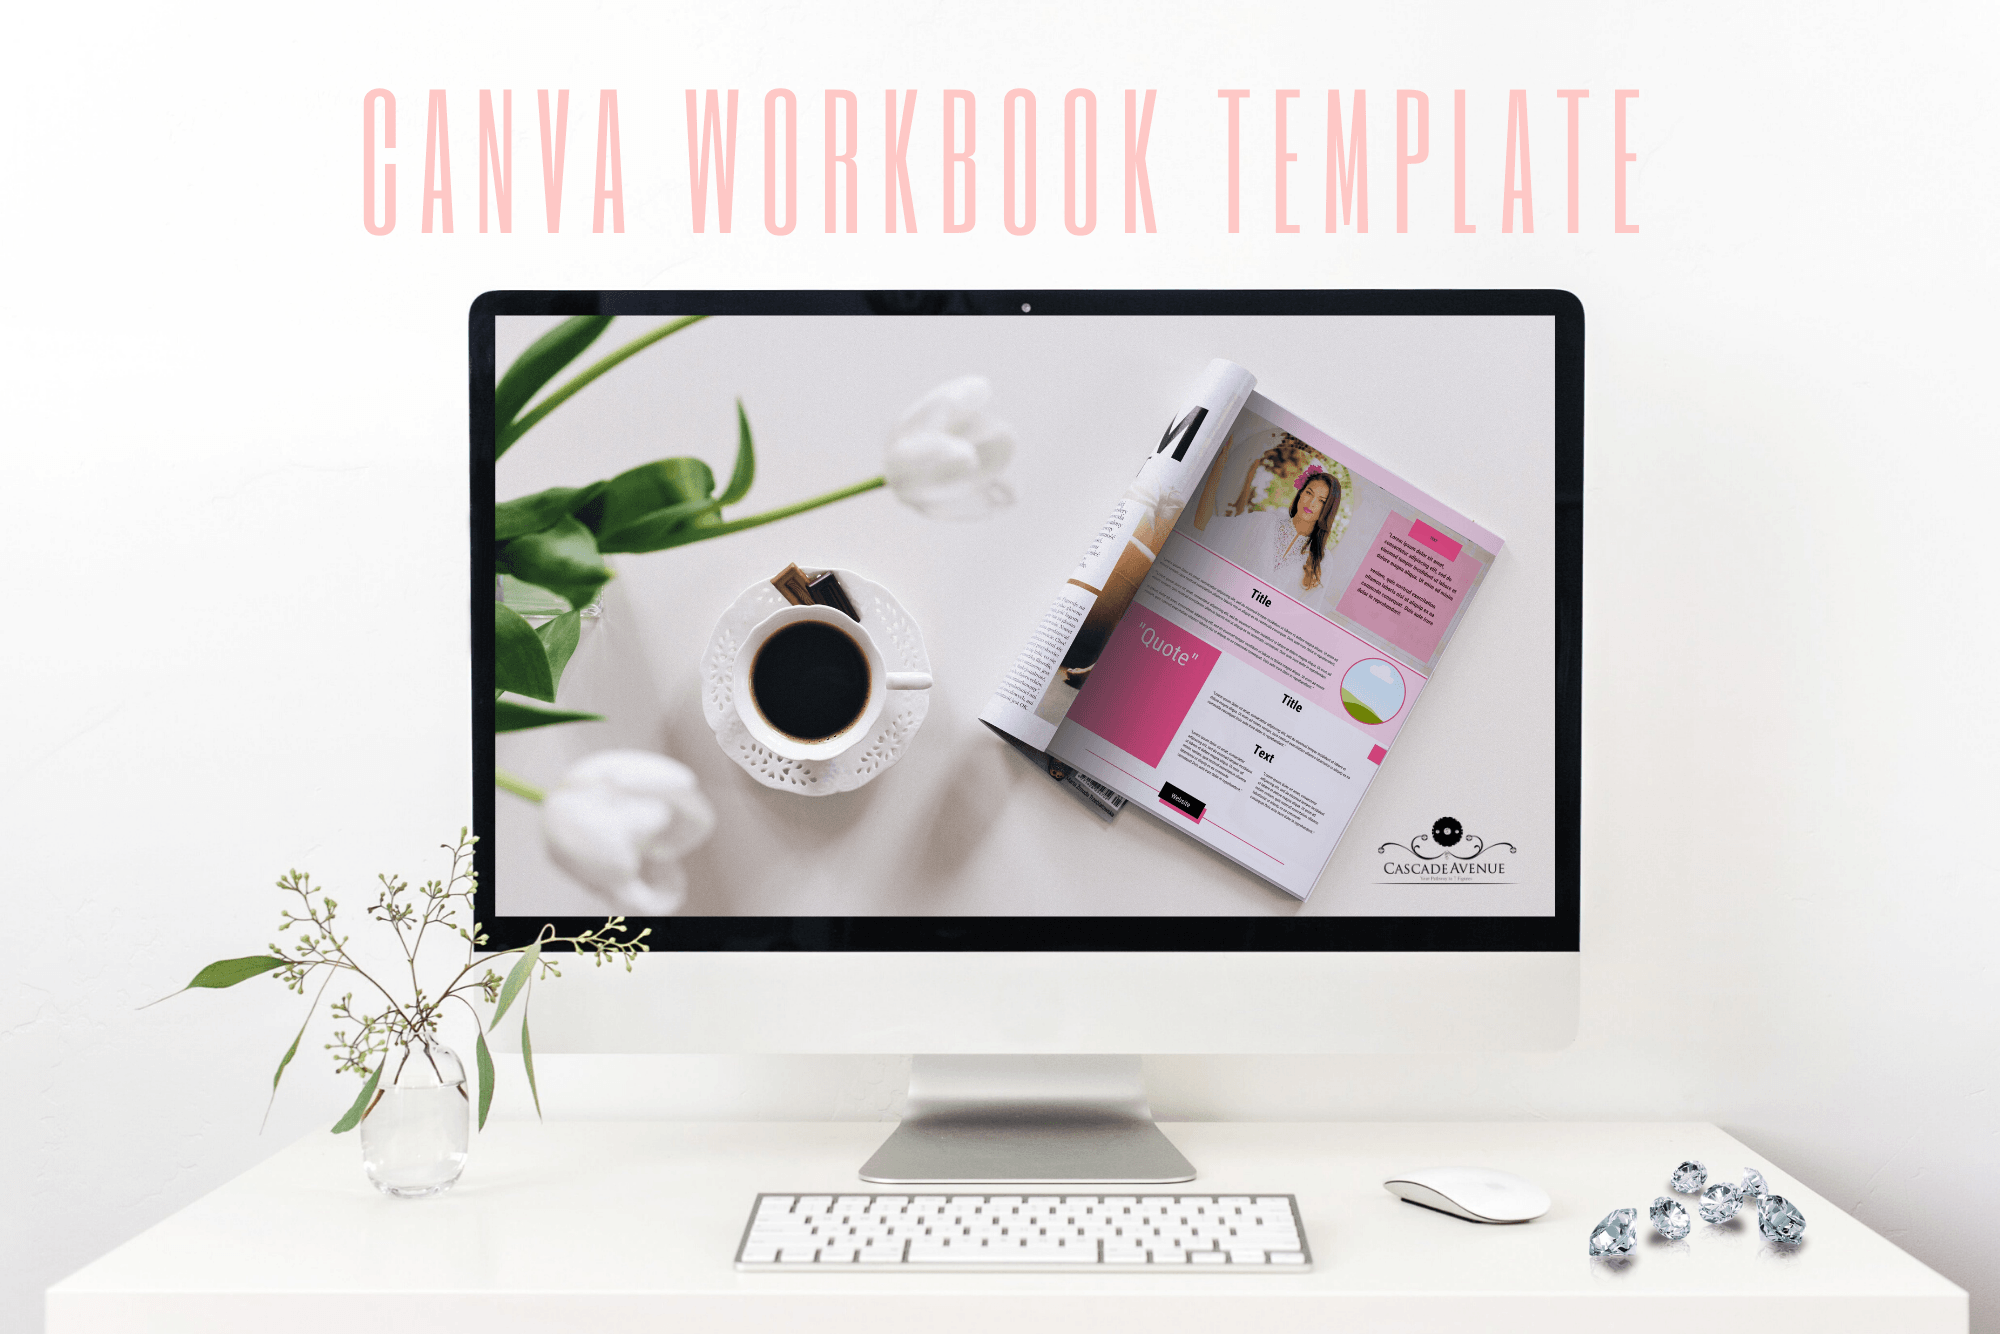 Canva Workbook Template compressor